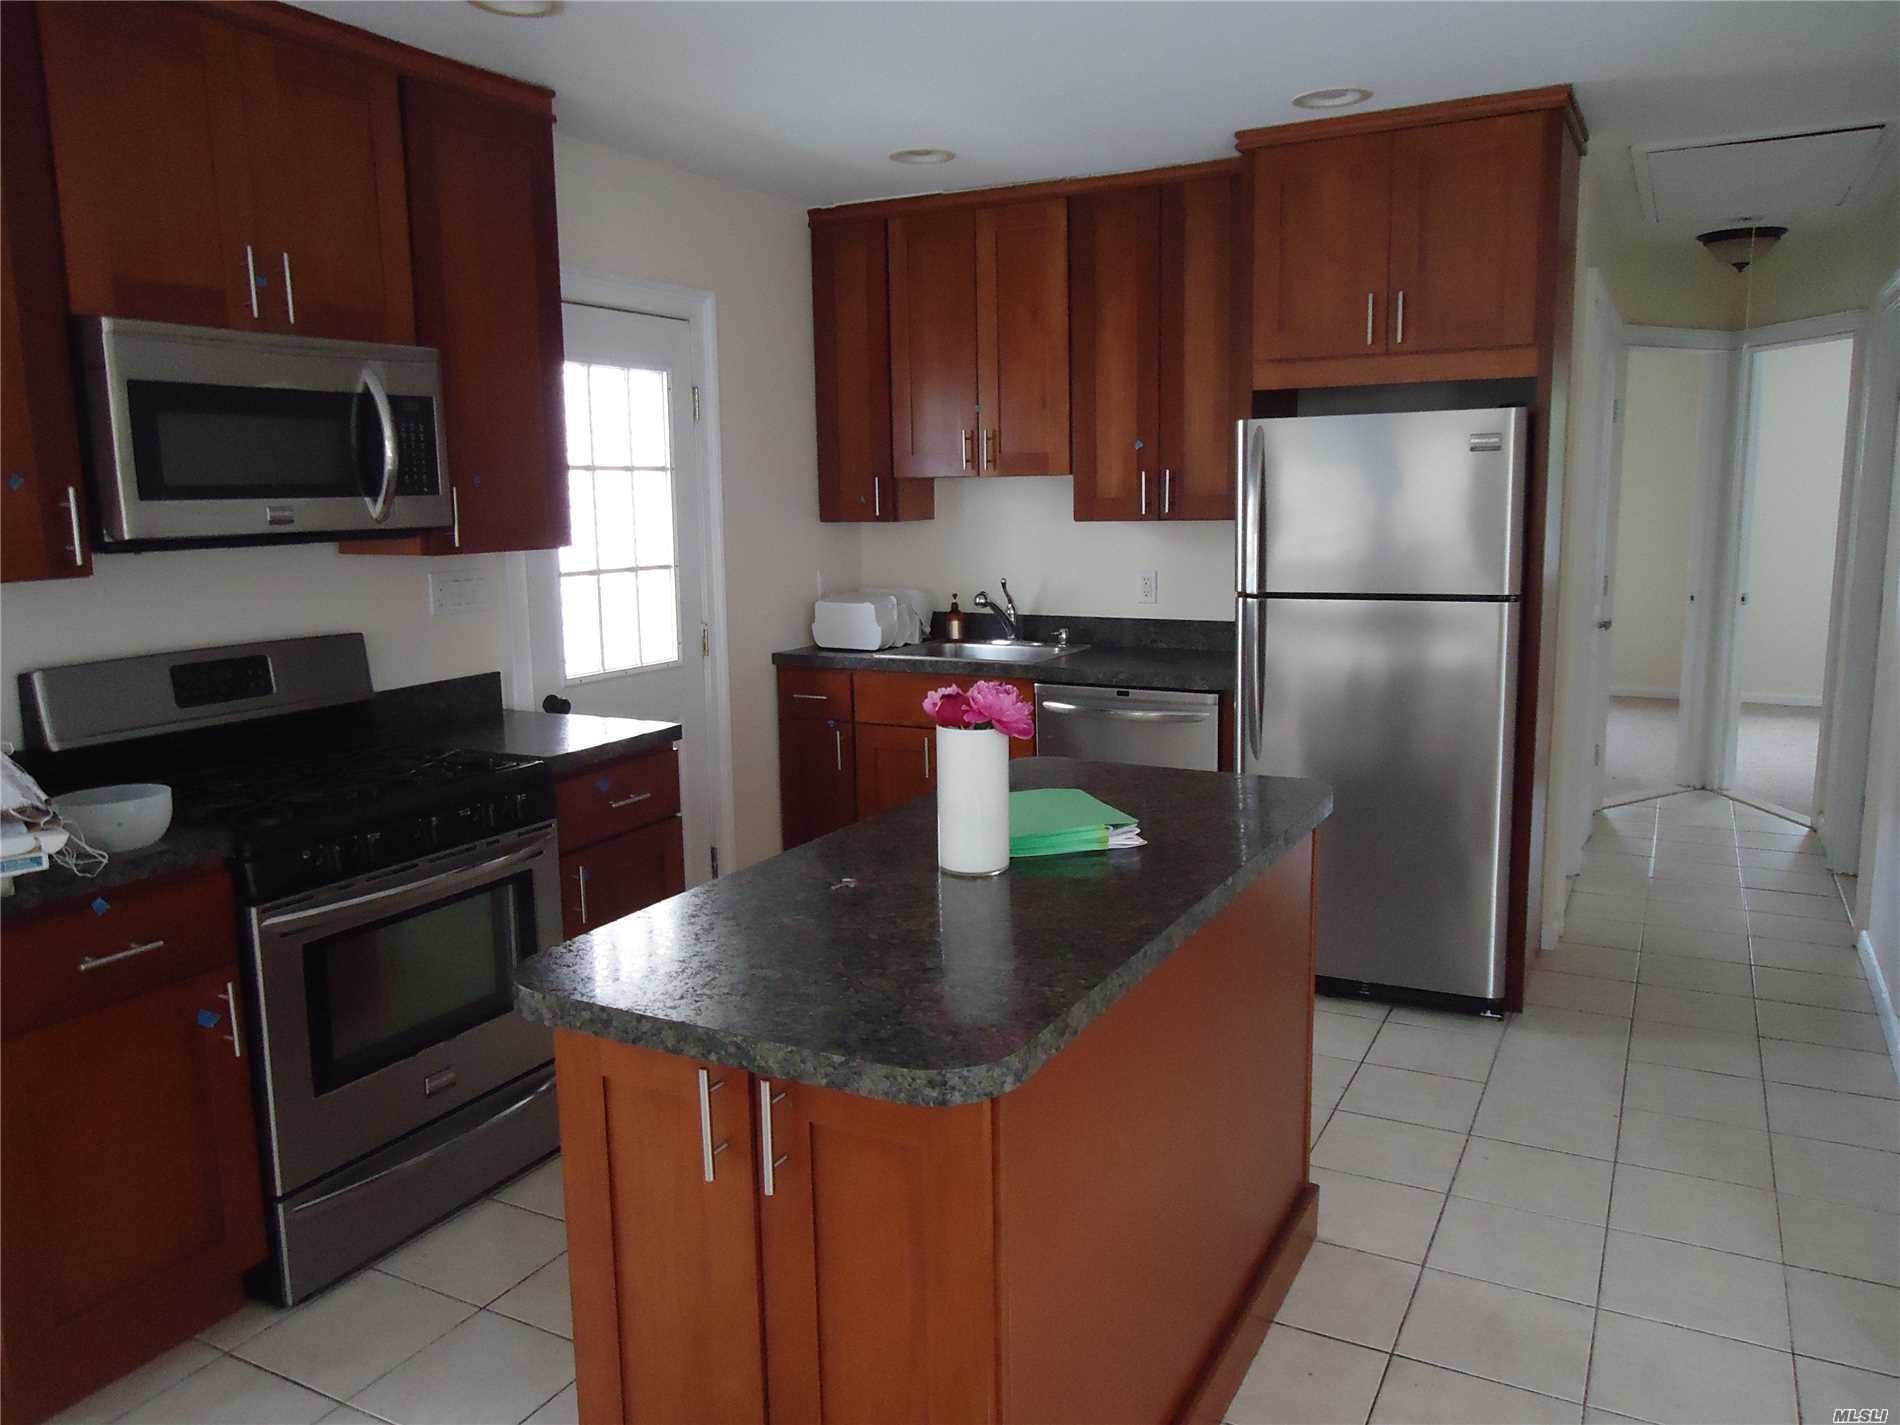 3 Bedroom Whole House Rental Offering Living Room/Diningroom, Full Bath, Kitchen, Washer/Dryer, Front Porch, And Large Back Yard, Private Beach.